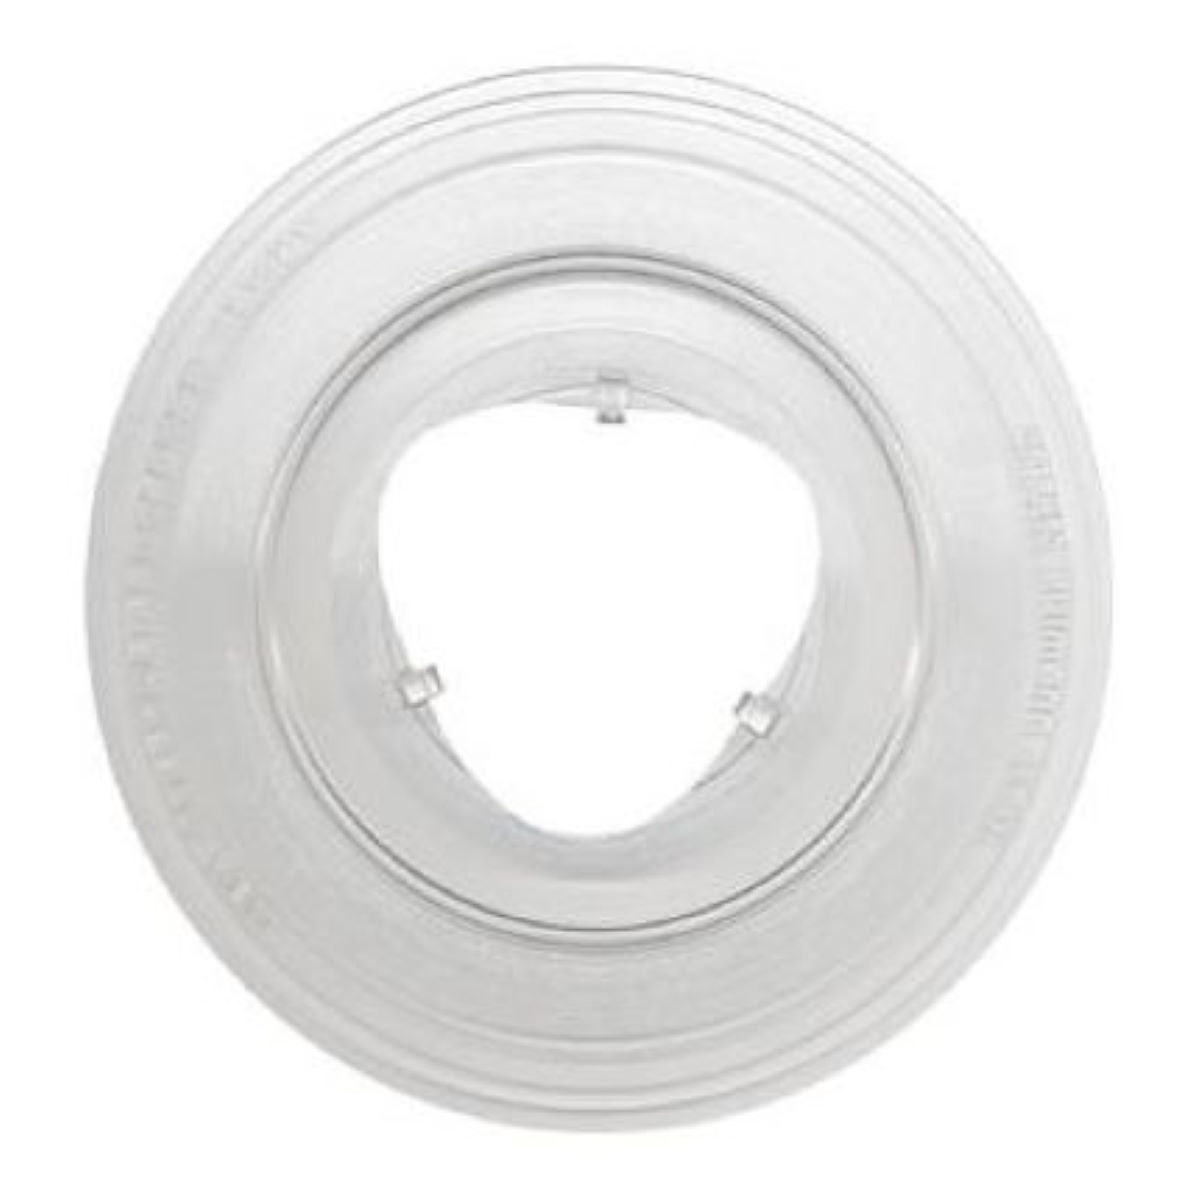 Shimano Spoke Protector - 36 Hole Clear  Cassette Spares